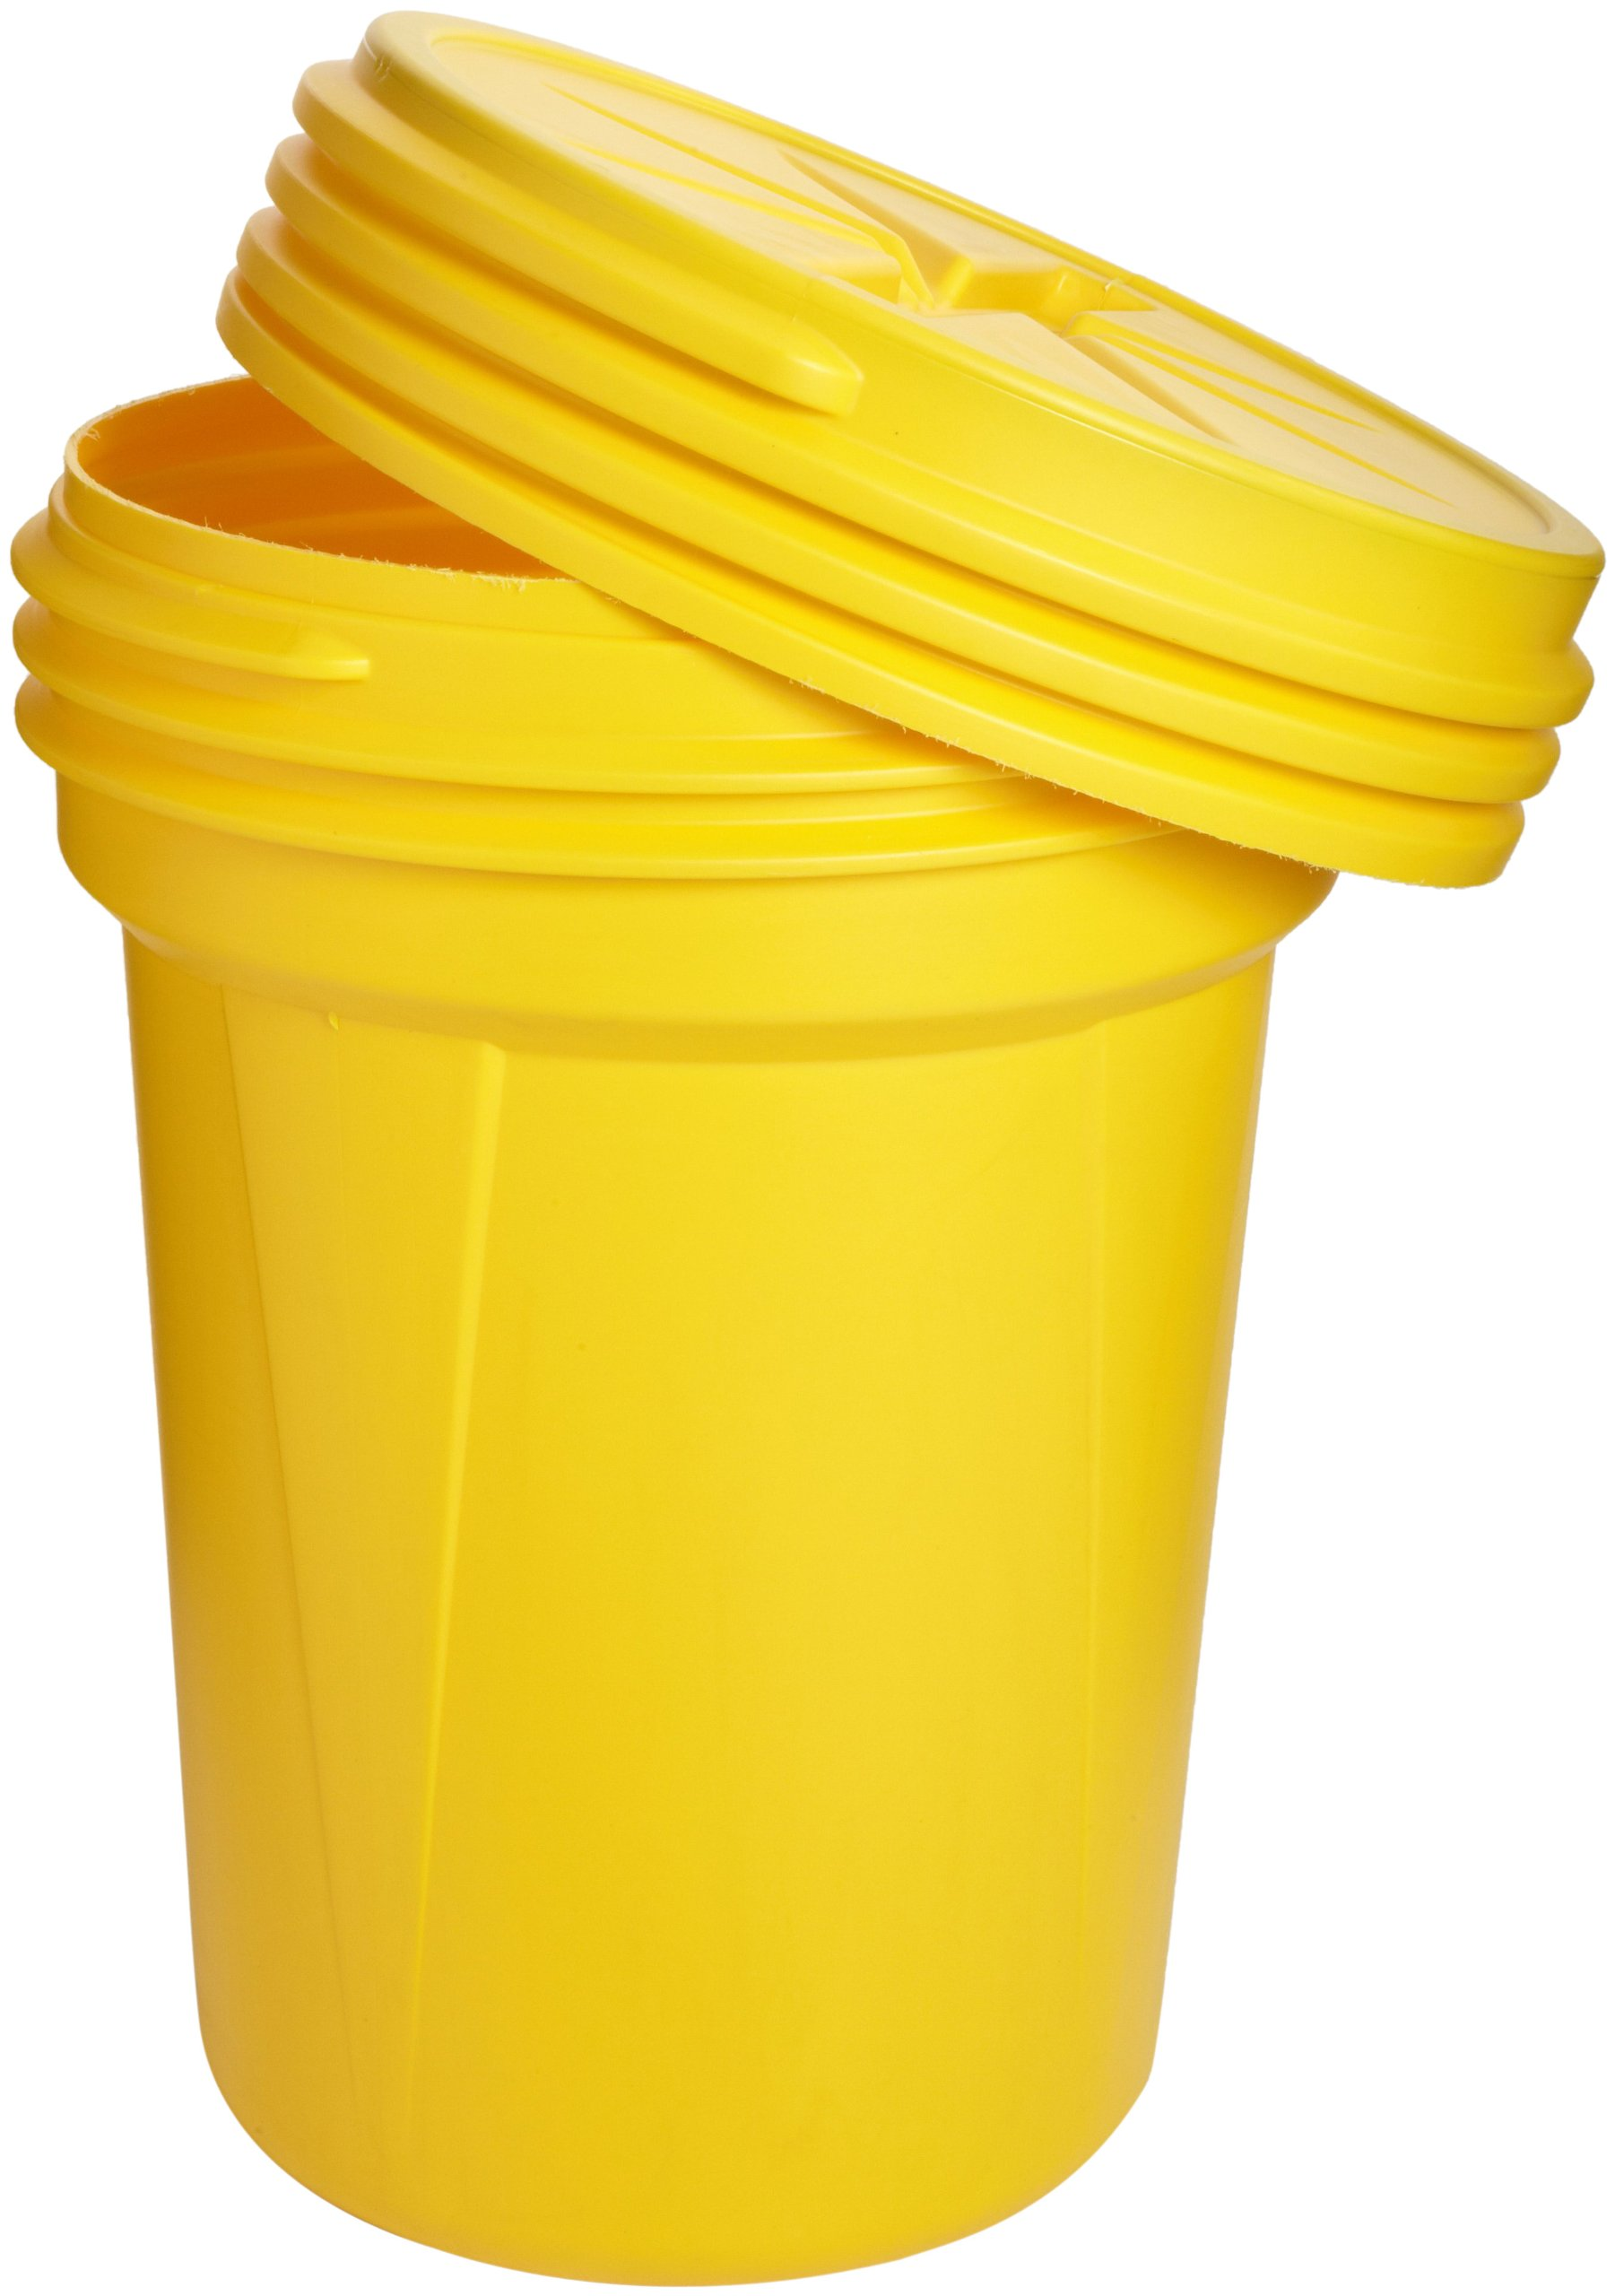 Eagle 1600SL Yellow High Density Polyethylene Lab Pack Drum with Plastic Screw-on Lid, 30 gallon Capacity, 28.25'' Height, 22.5'' Diameter